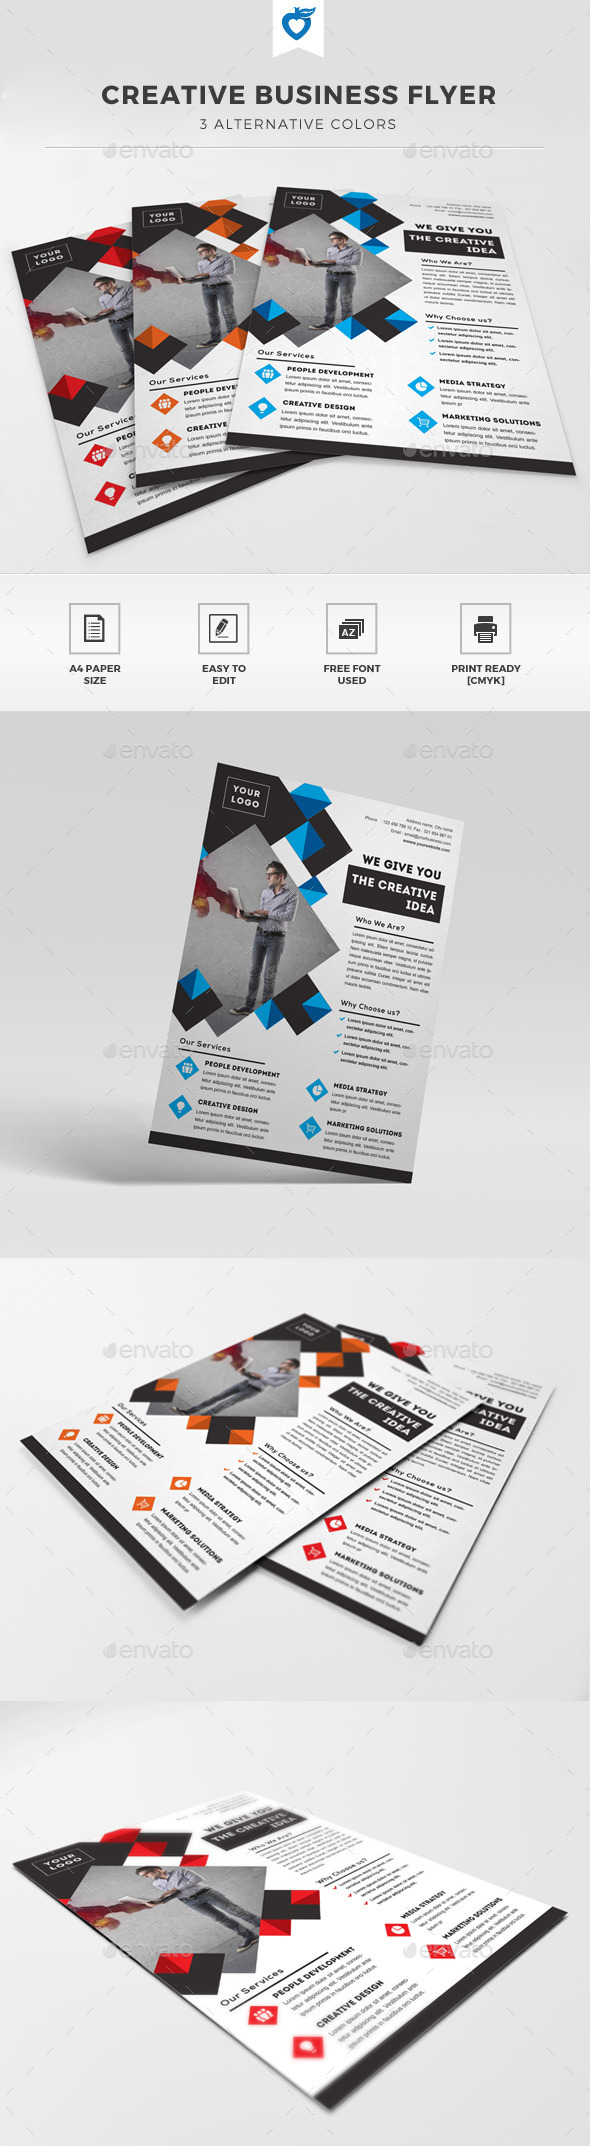 GraphicRiver Creative Business Flyer 11580031